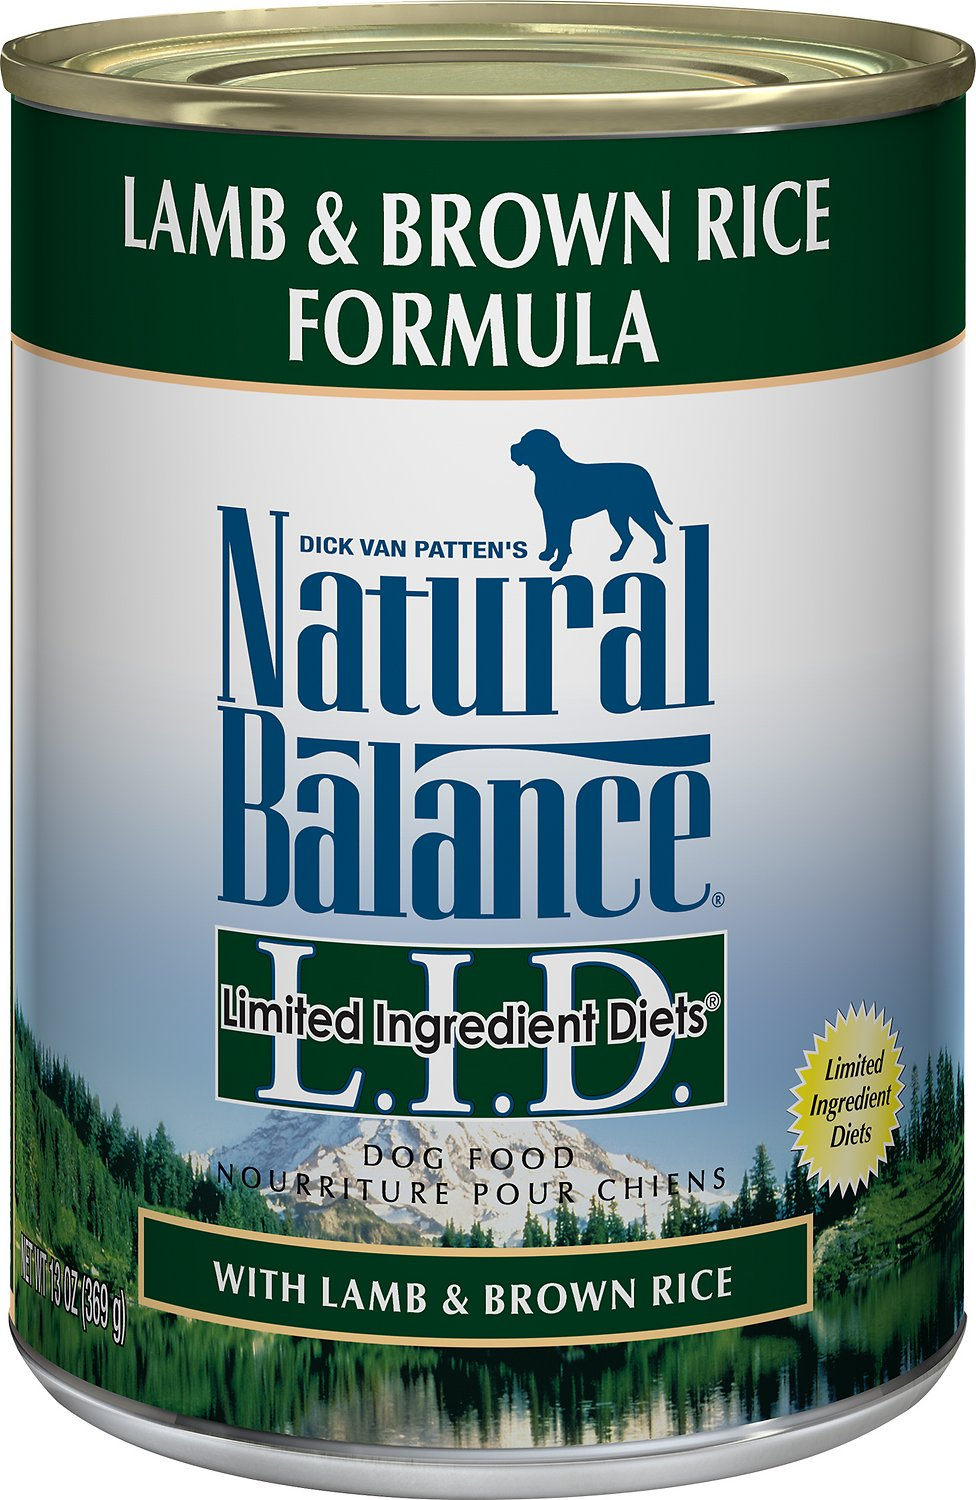 Natural Balance L.I.D. Limited Ingredient Diets Lamb & Brown Rice Formula Canned Dog Food, 13-oz